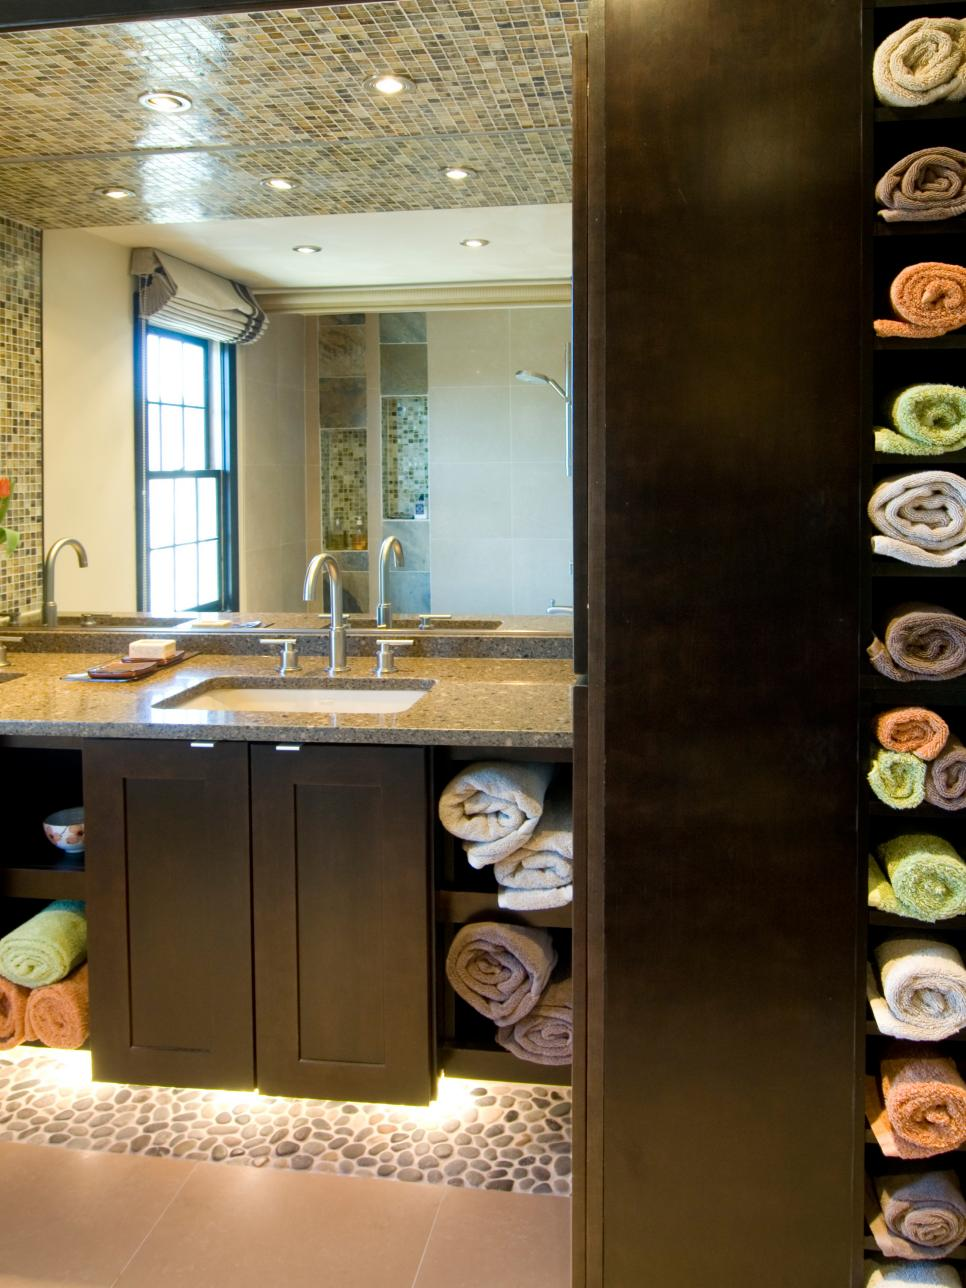 Clever Bathroom Storage Ideas HGTV - Bathroom towel hanging ideas for small bathroom ideas